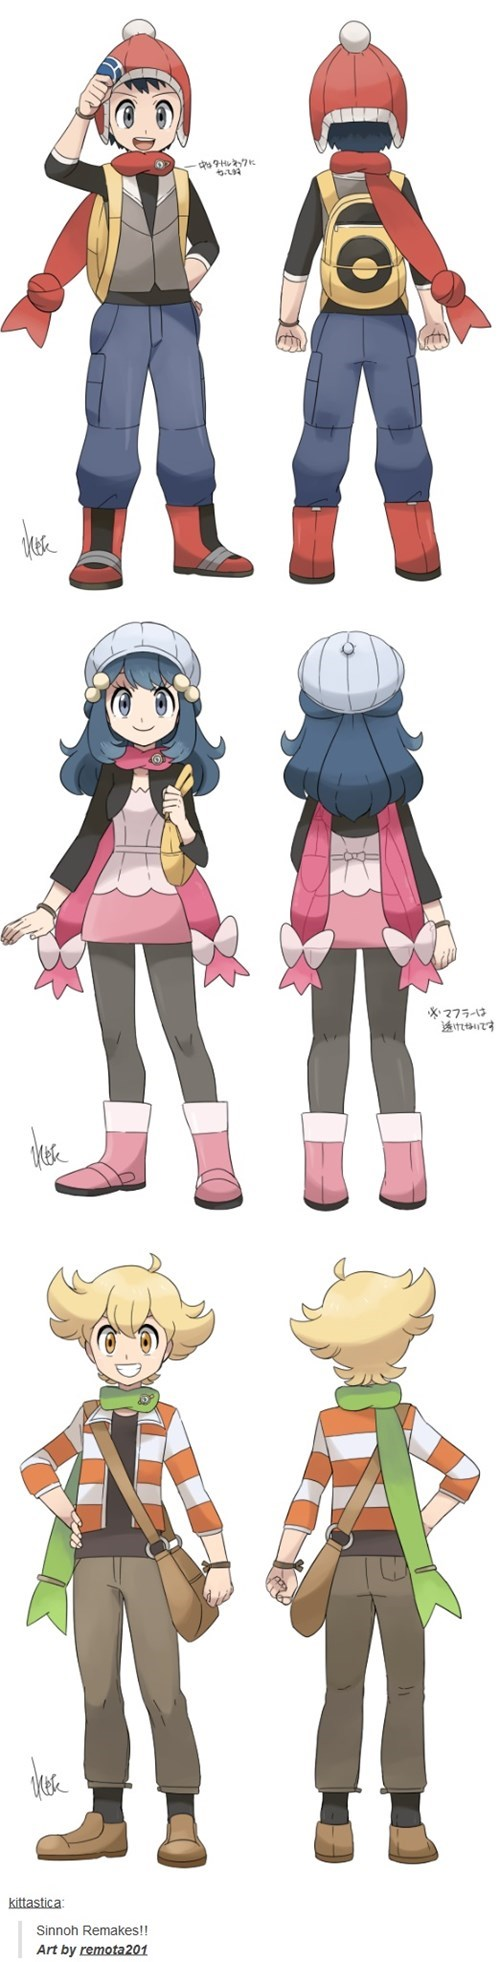 I Demand for Sinnoh Remakes!